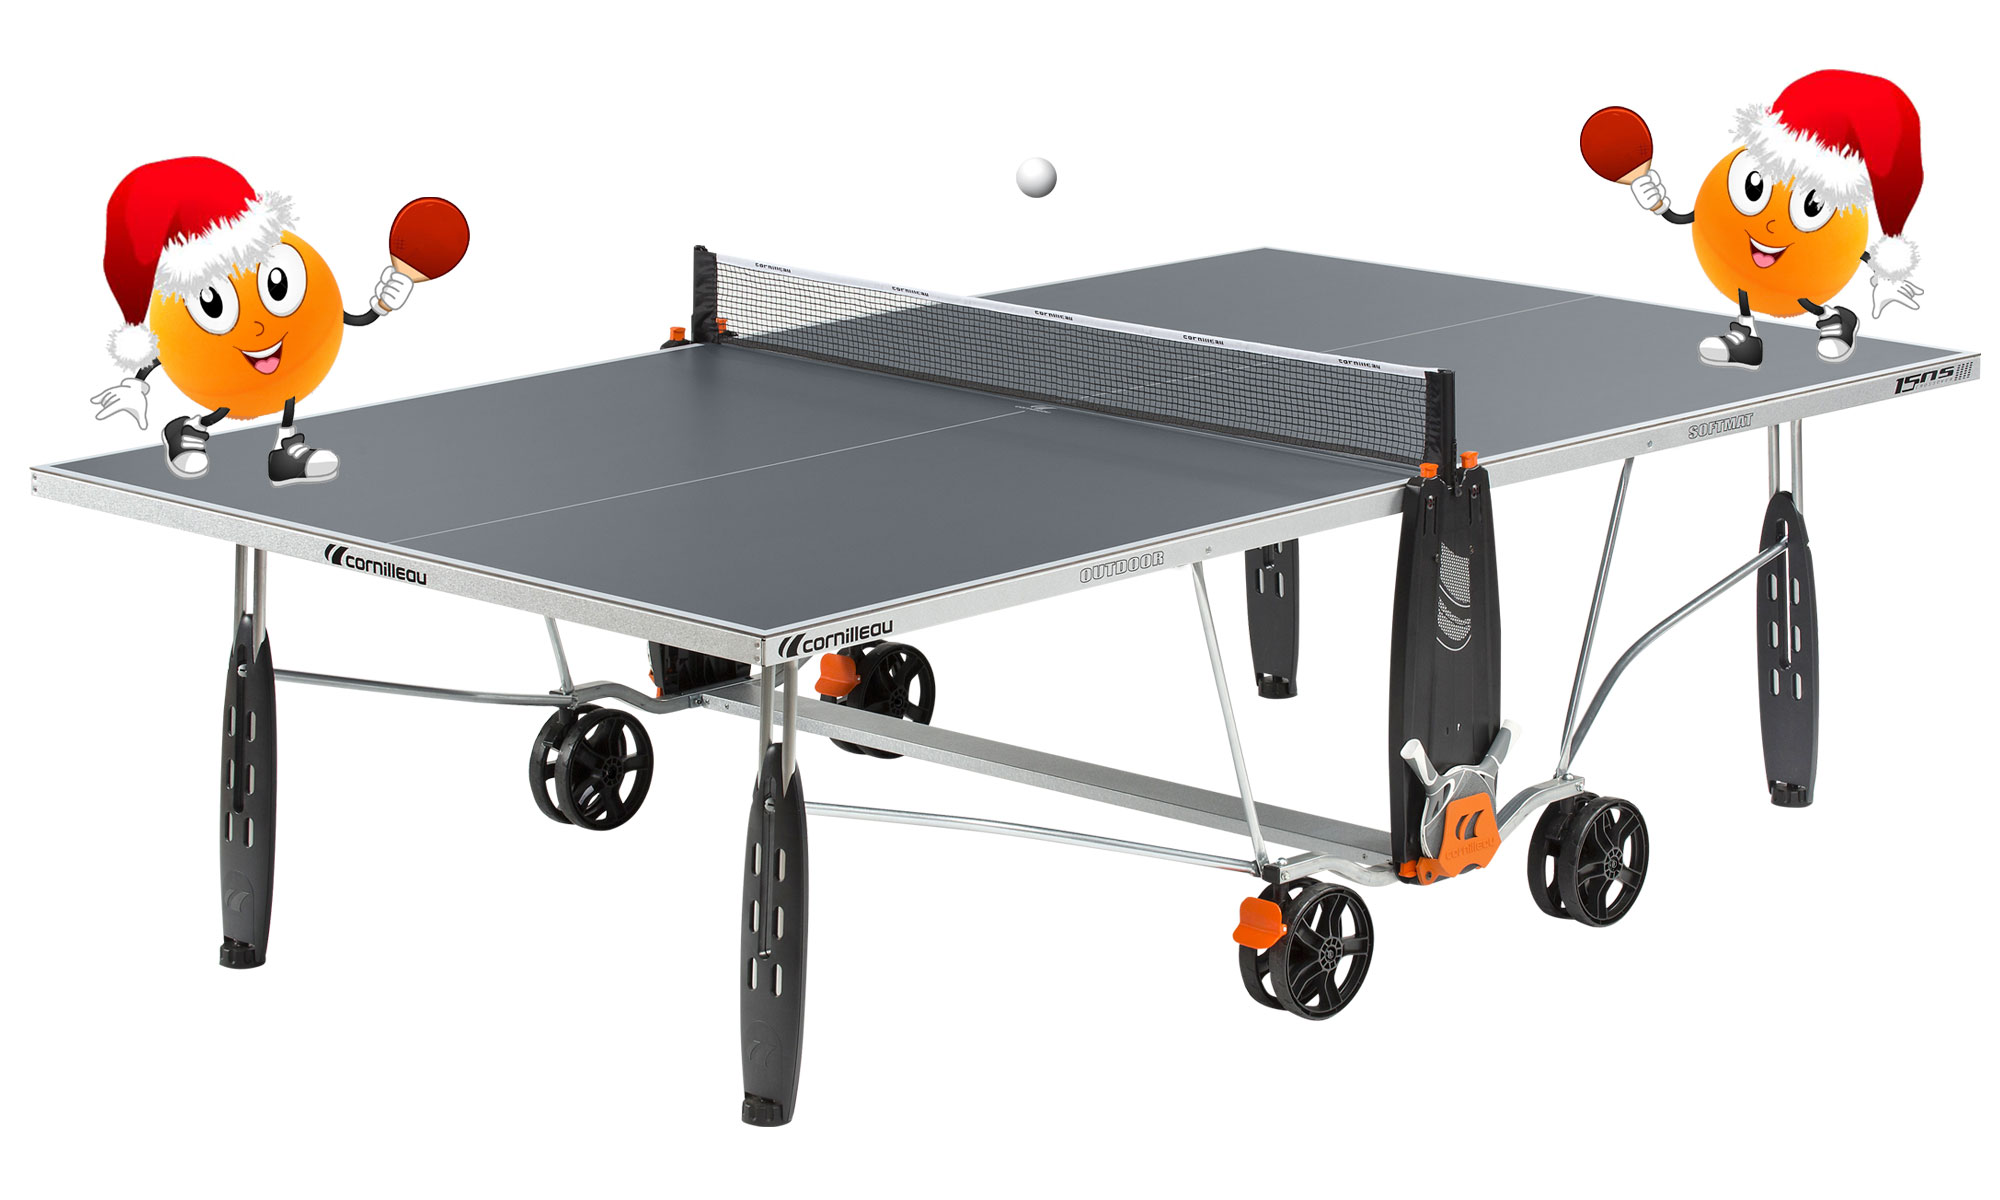 Cornilleau sport 150s crossover outdoor table tennis table - Weatherproof table tennis table ...